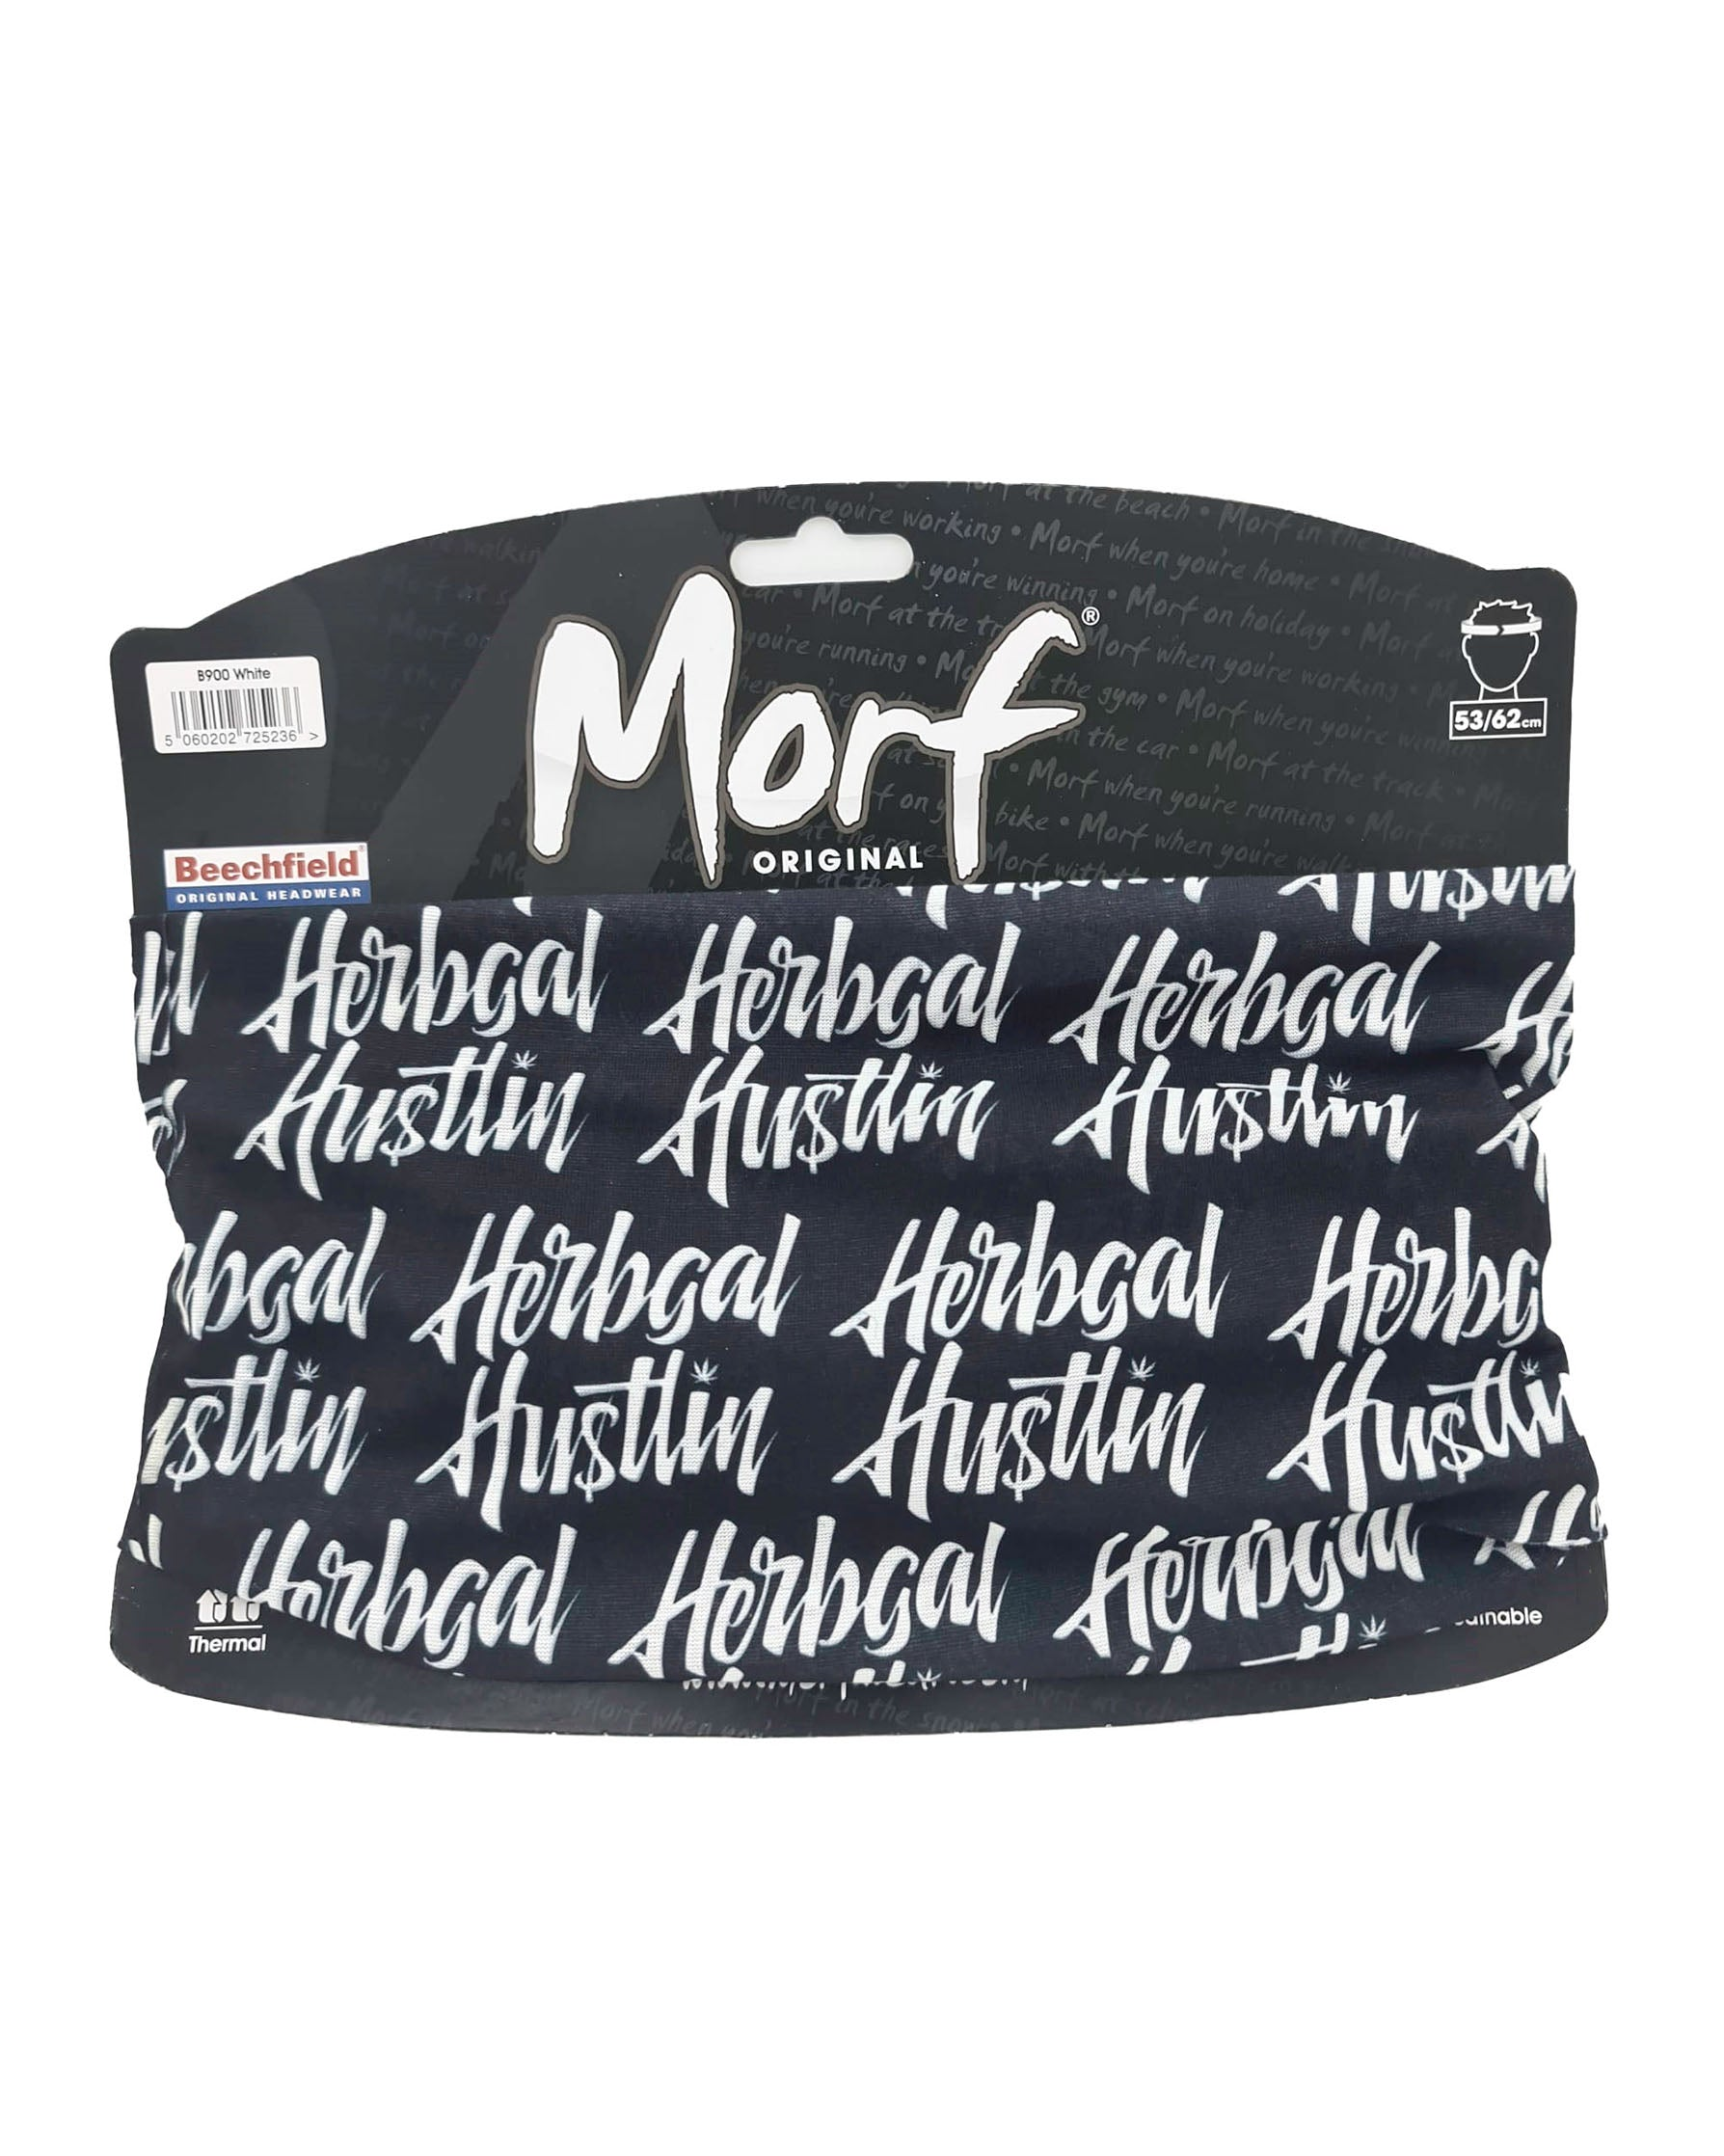 Herbgal Hustlin Script Face Covering/Bandana - Black/White